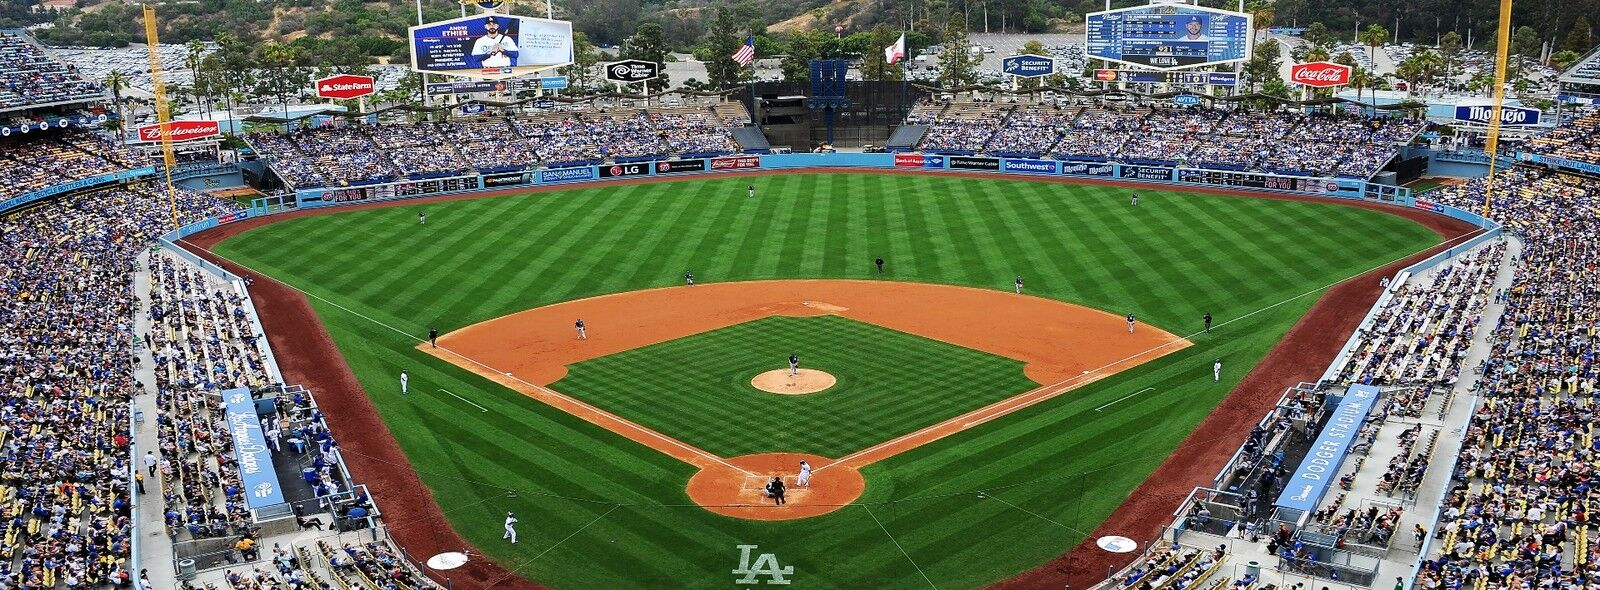 San Francisco Giants at Los Angeles Dodgers Tickets (Friday Night Fireworks)